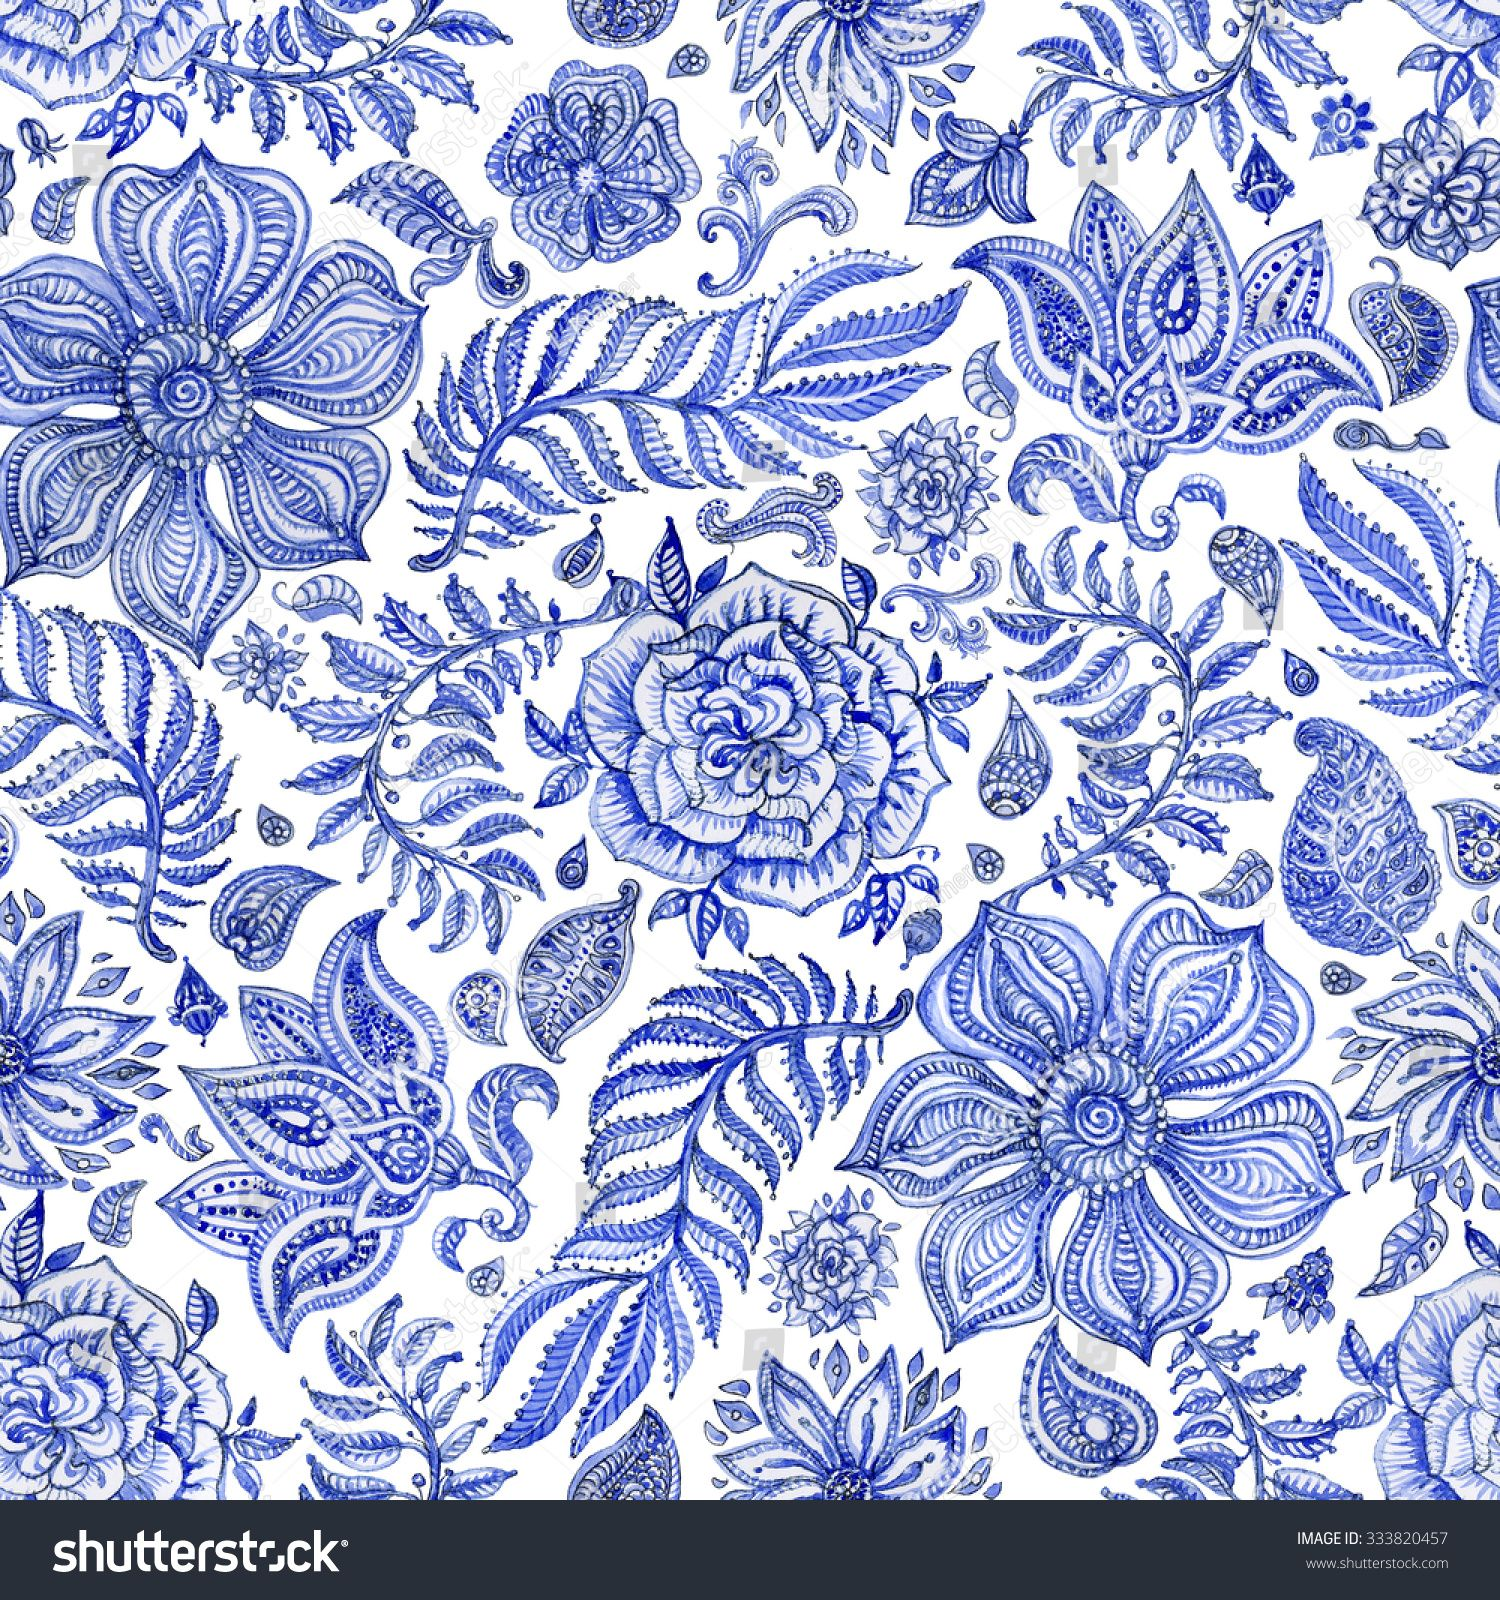 stock-photo-abstract-seamless-floral-pattern-of-indigo-blue-hand-painted-watercolor-fantasy-leaves-flowers-333820457.jpg (1500×1600)